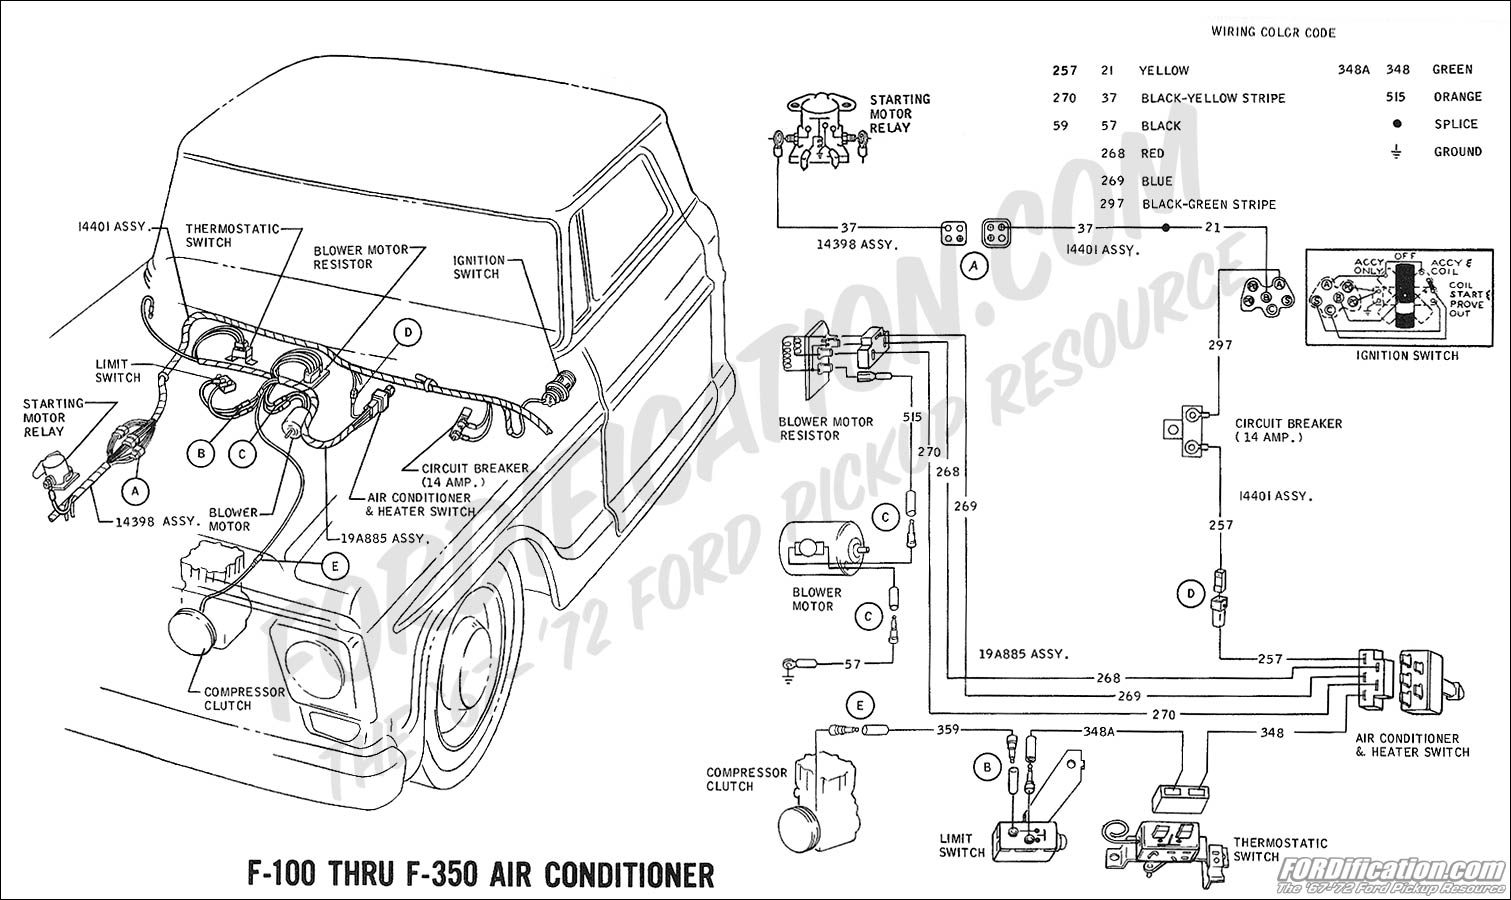 1984 Ford Ranger Clutch Parts Diagram Wire Data Schema 2011 F350 Wiring Http Technoanswersblogspotcom 06 Truck Technical Drawings And Schematics Section H 1993 Transmission 2002 Kit